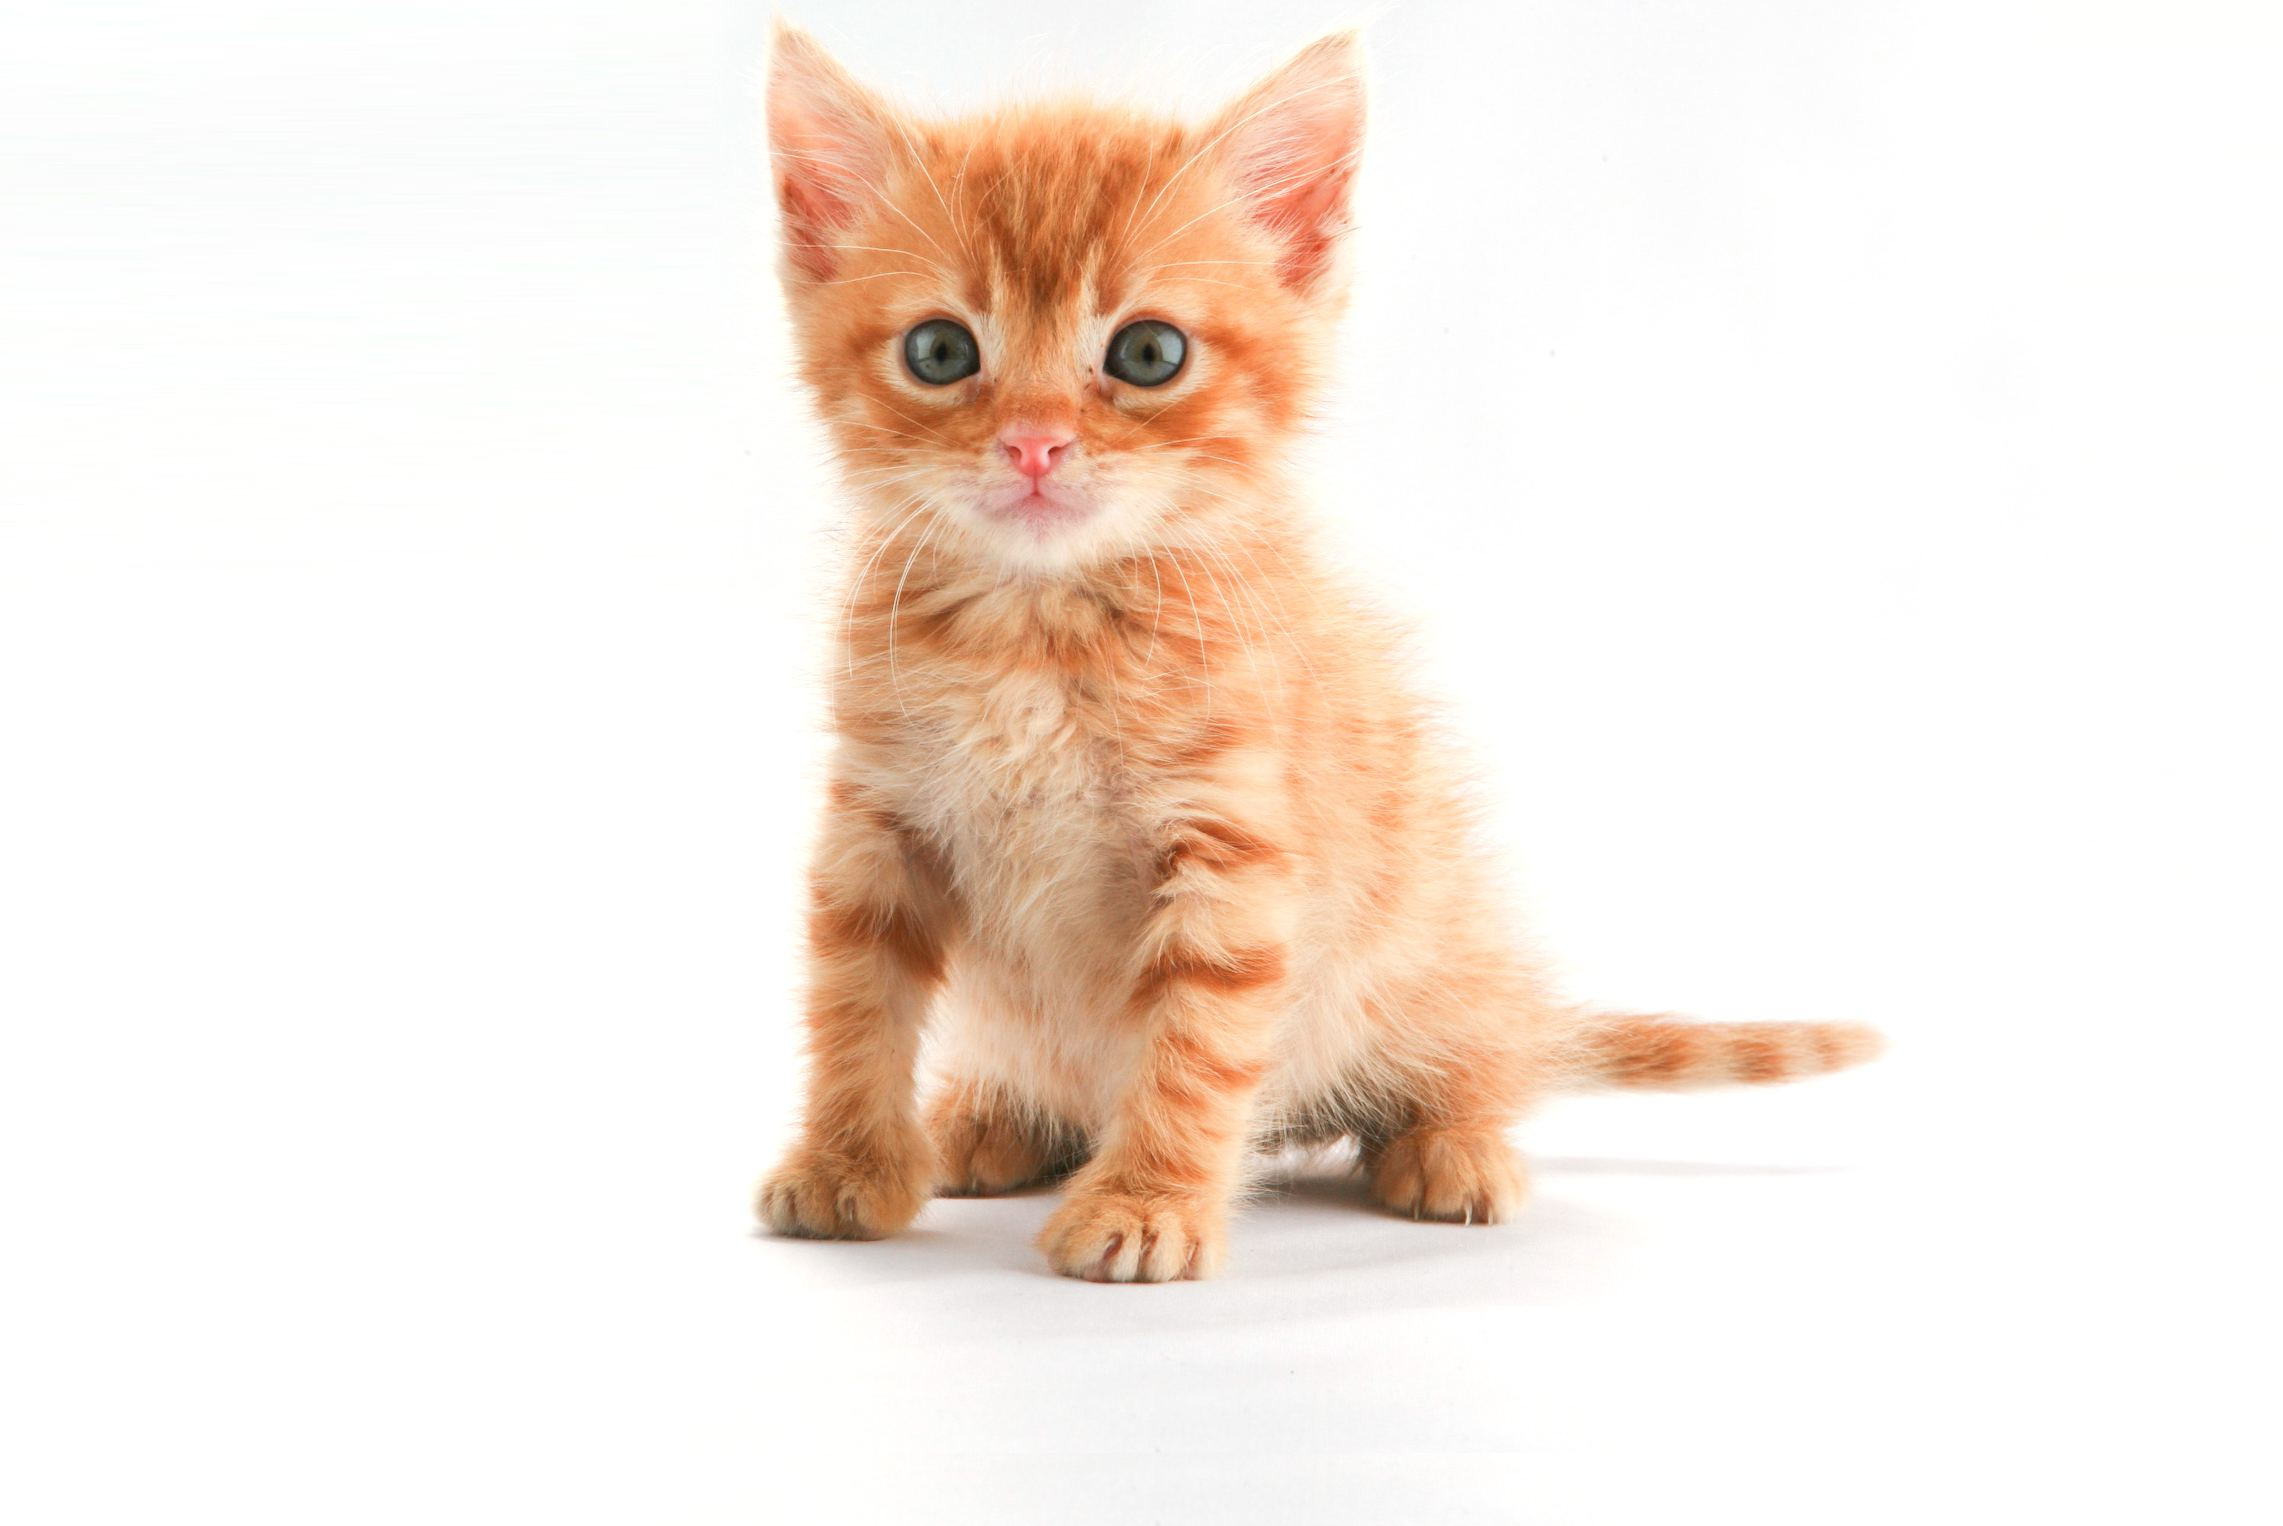 The Little Orange Kitten 753345